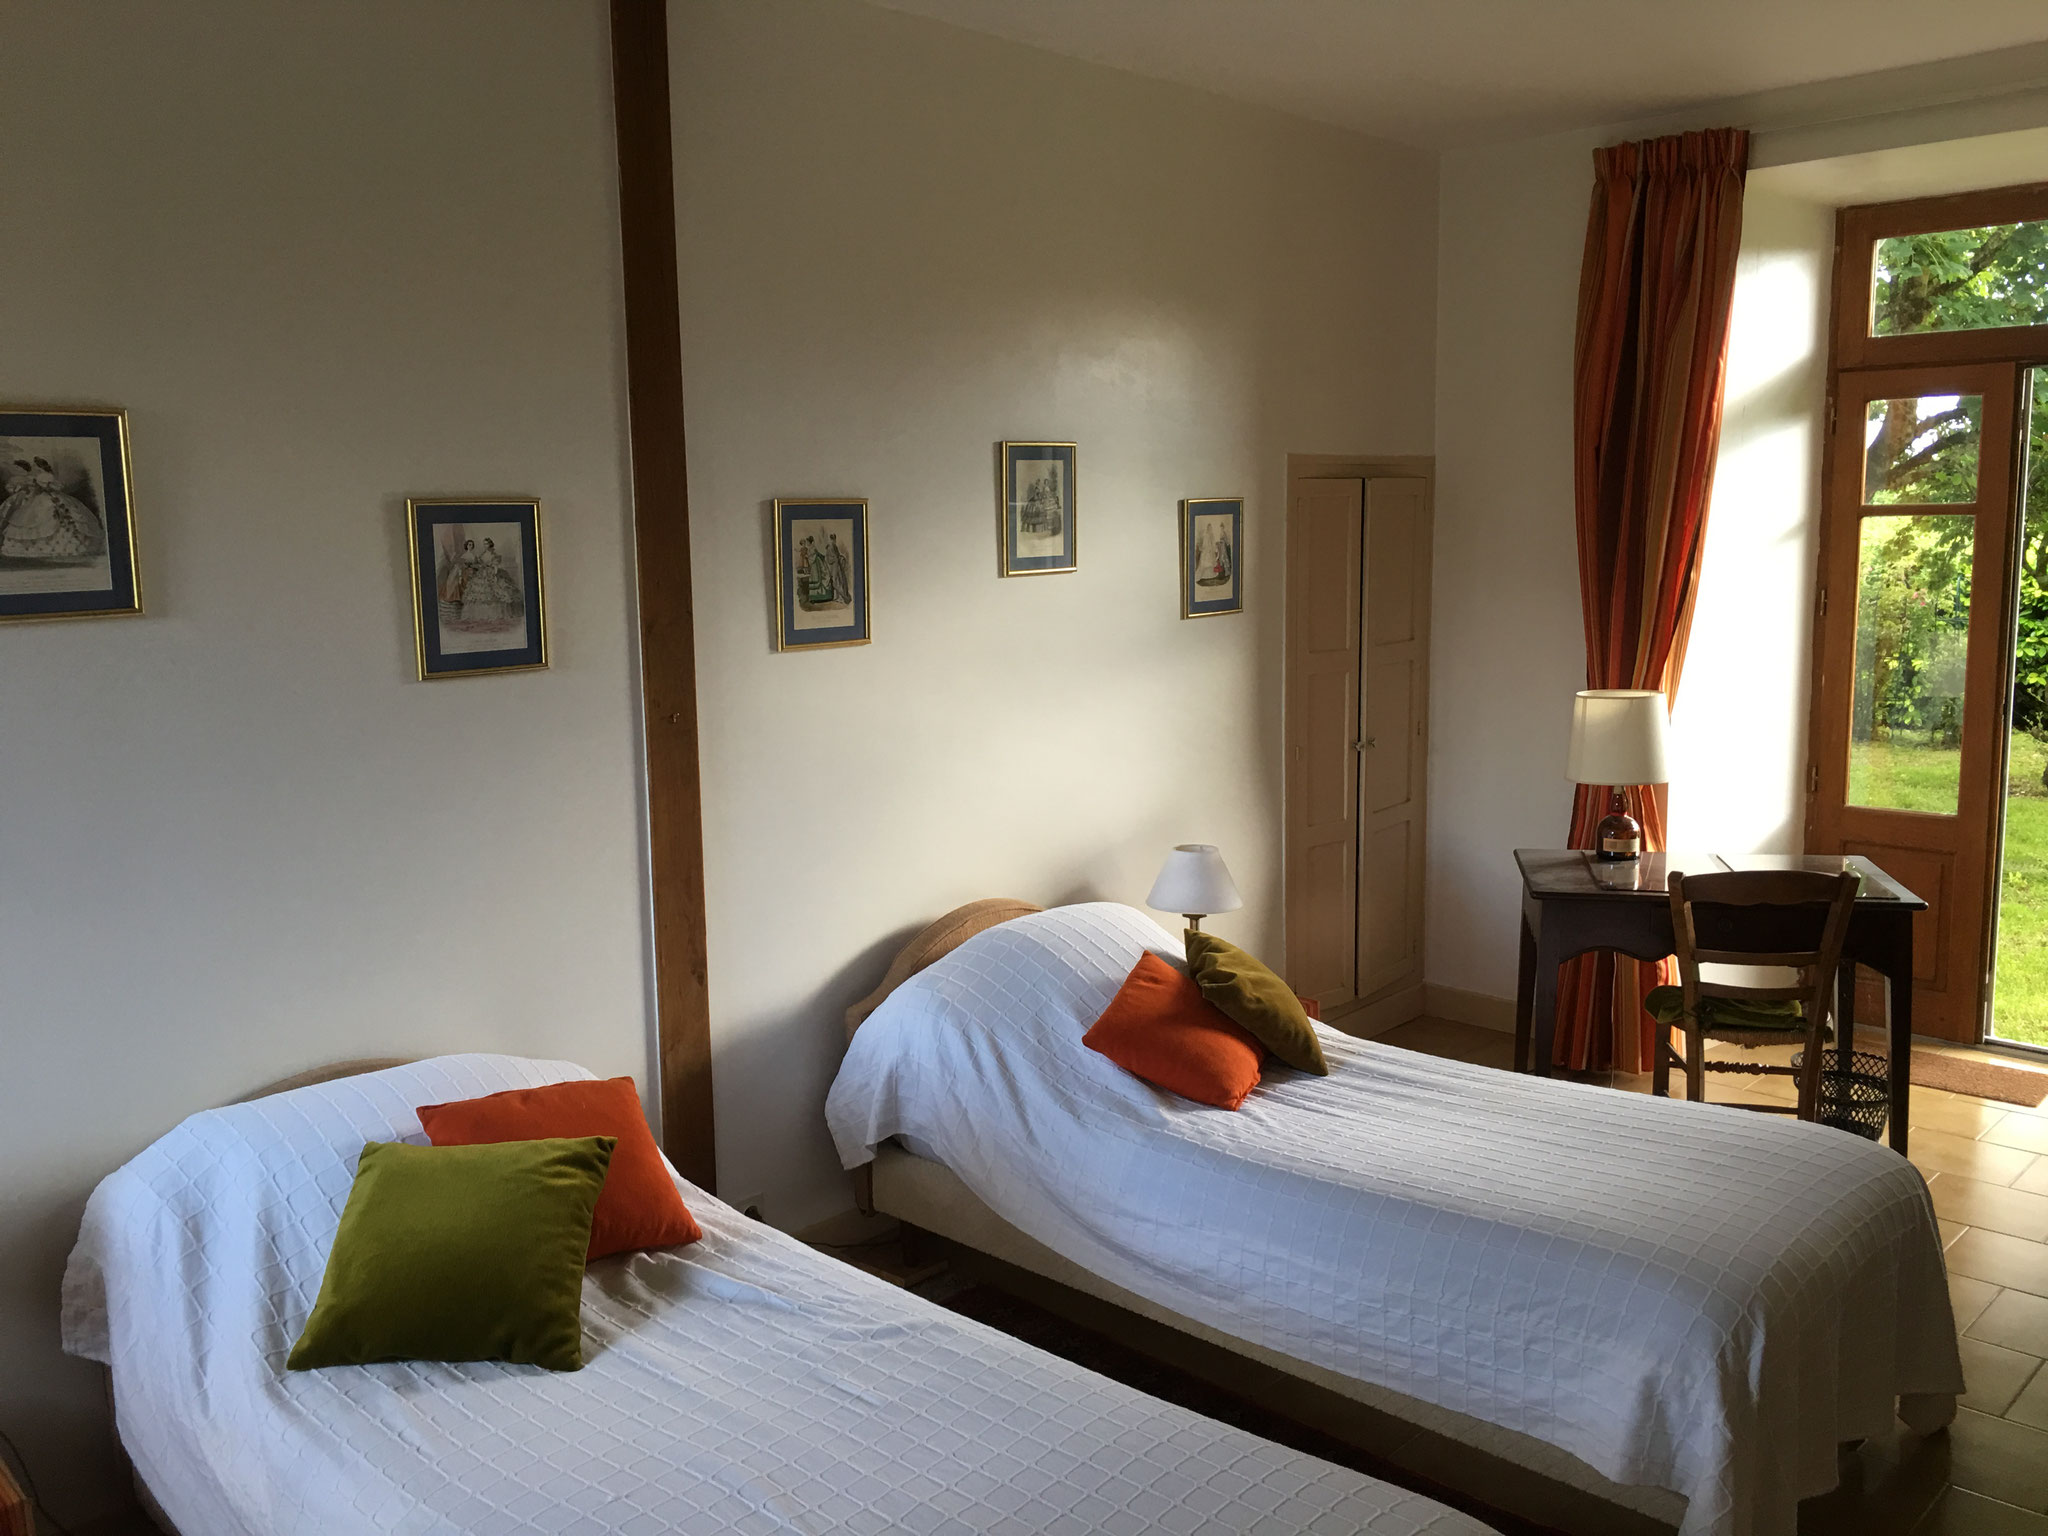 Room with 2 beds on the ground floor, from the entrance to the room